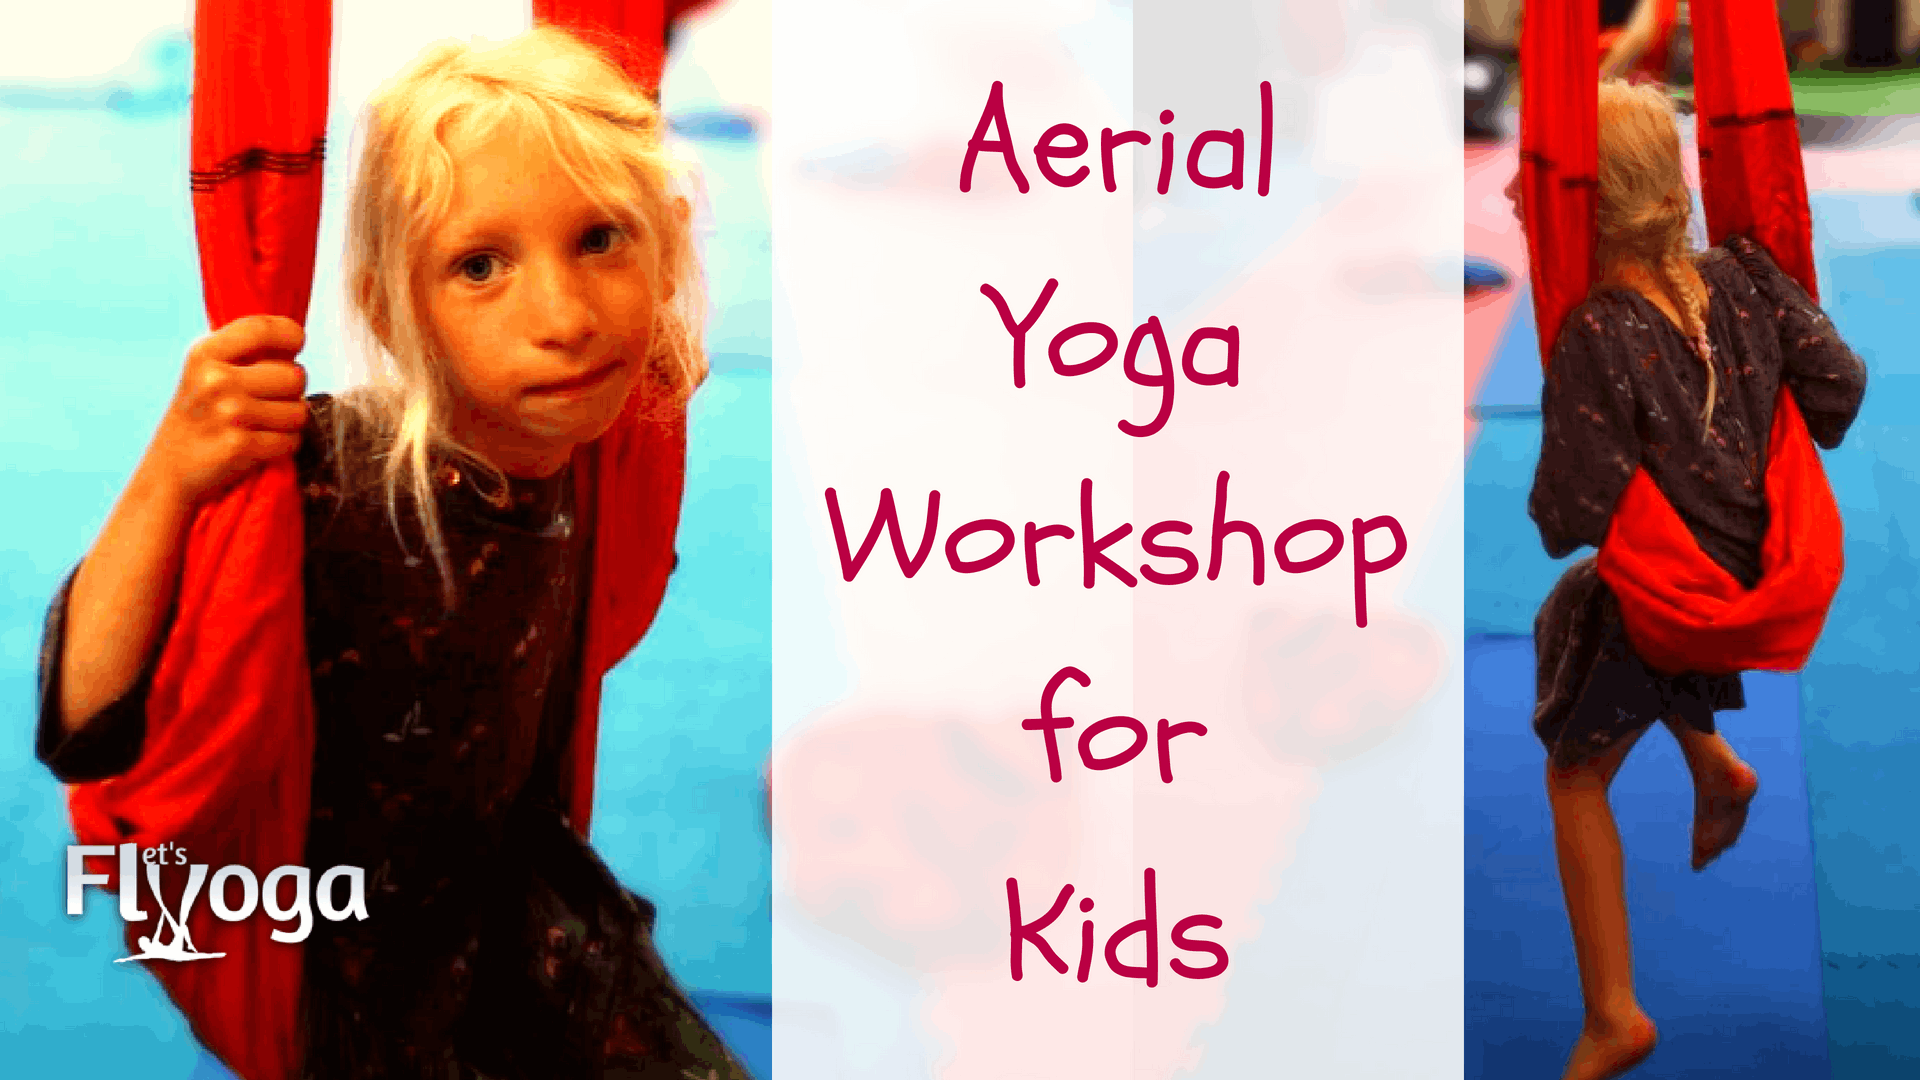 Aerial Yoga for Kids workshop in Galway